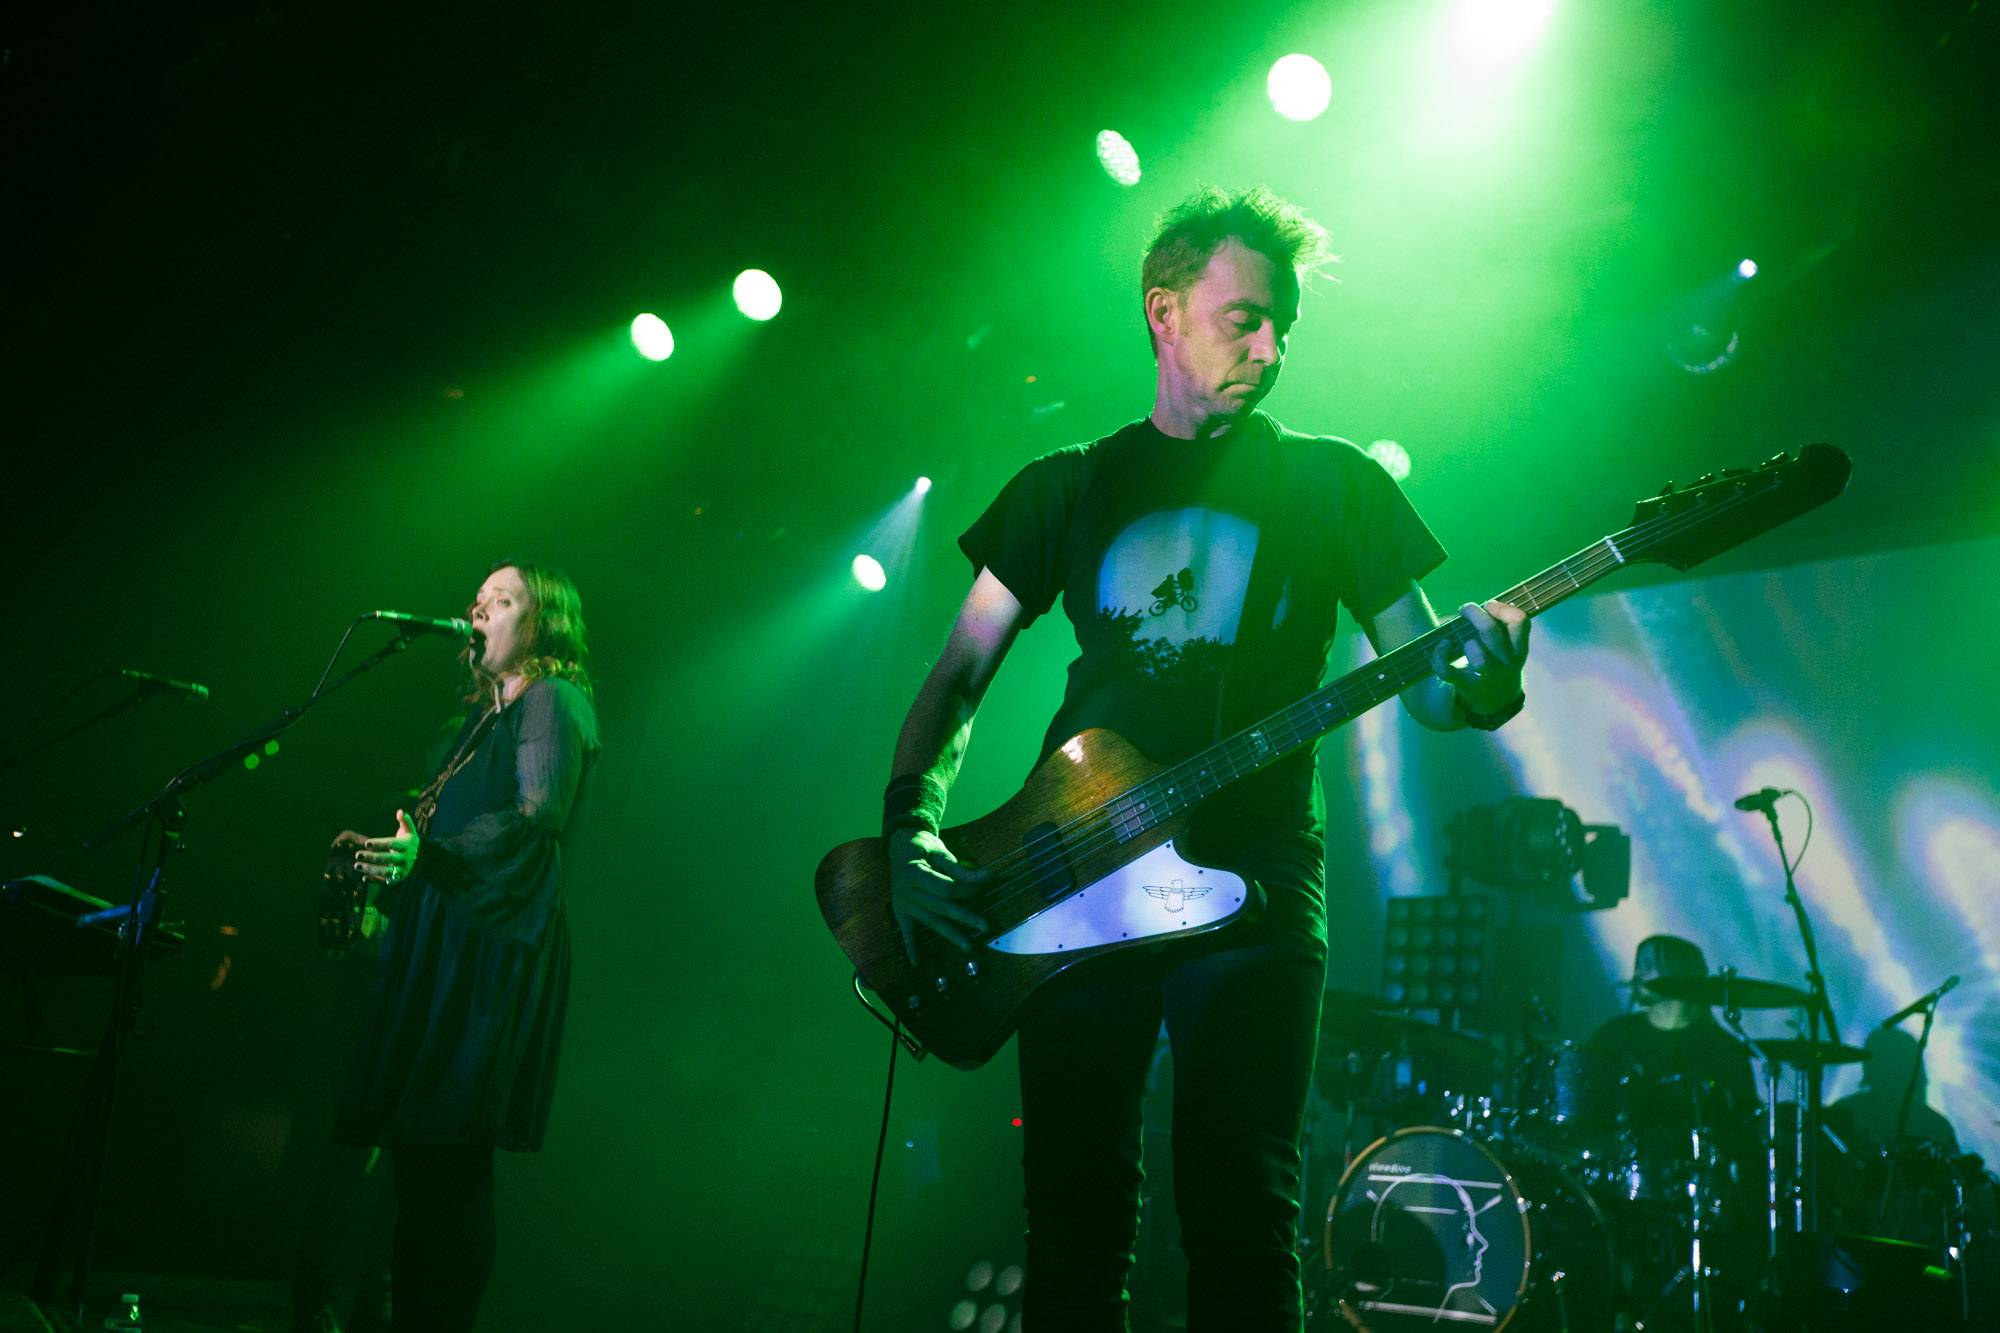 Slowdive at the Commodore Ballroom, Vancouver, Oct 23 2017. Kirk Chantraine photo.